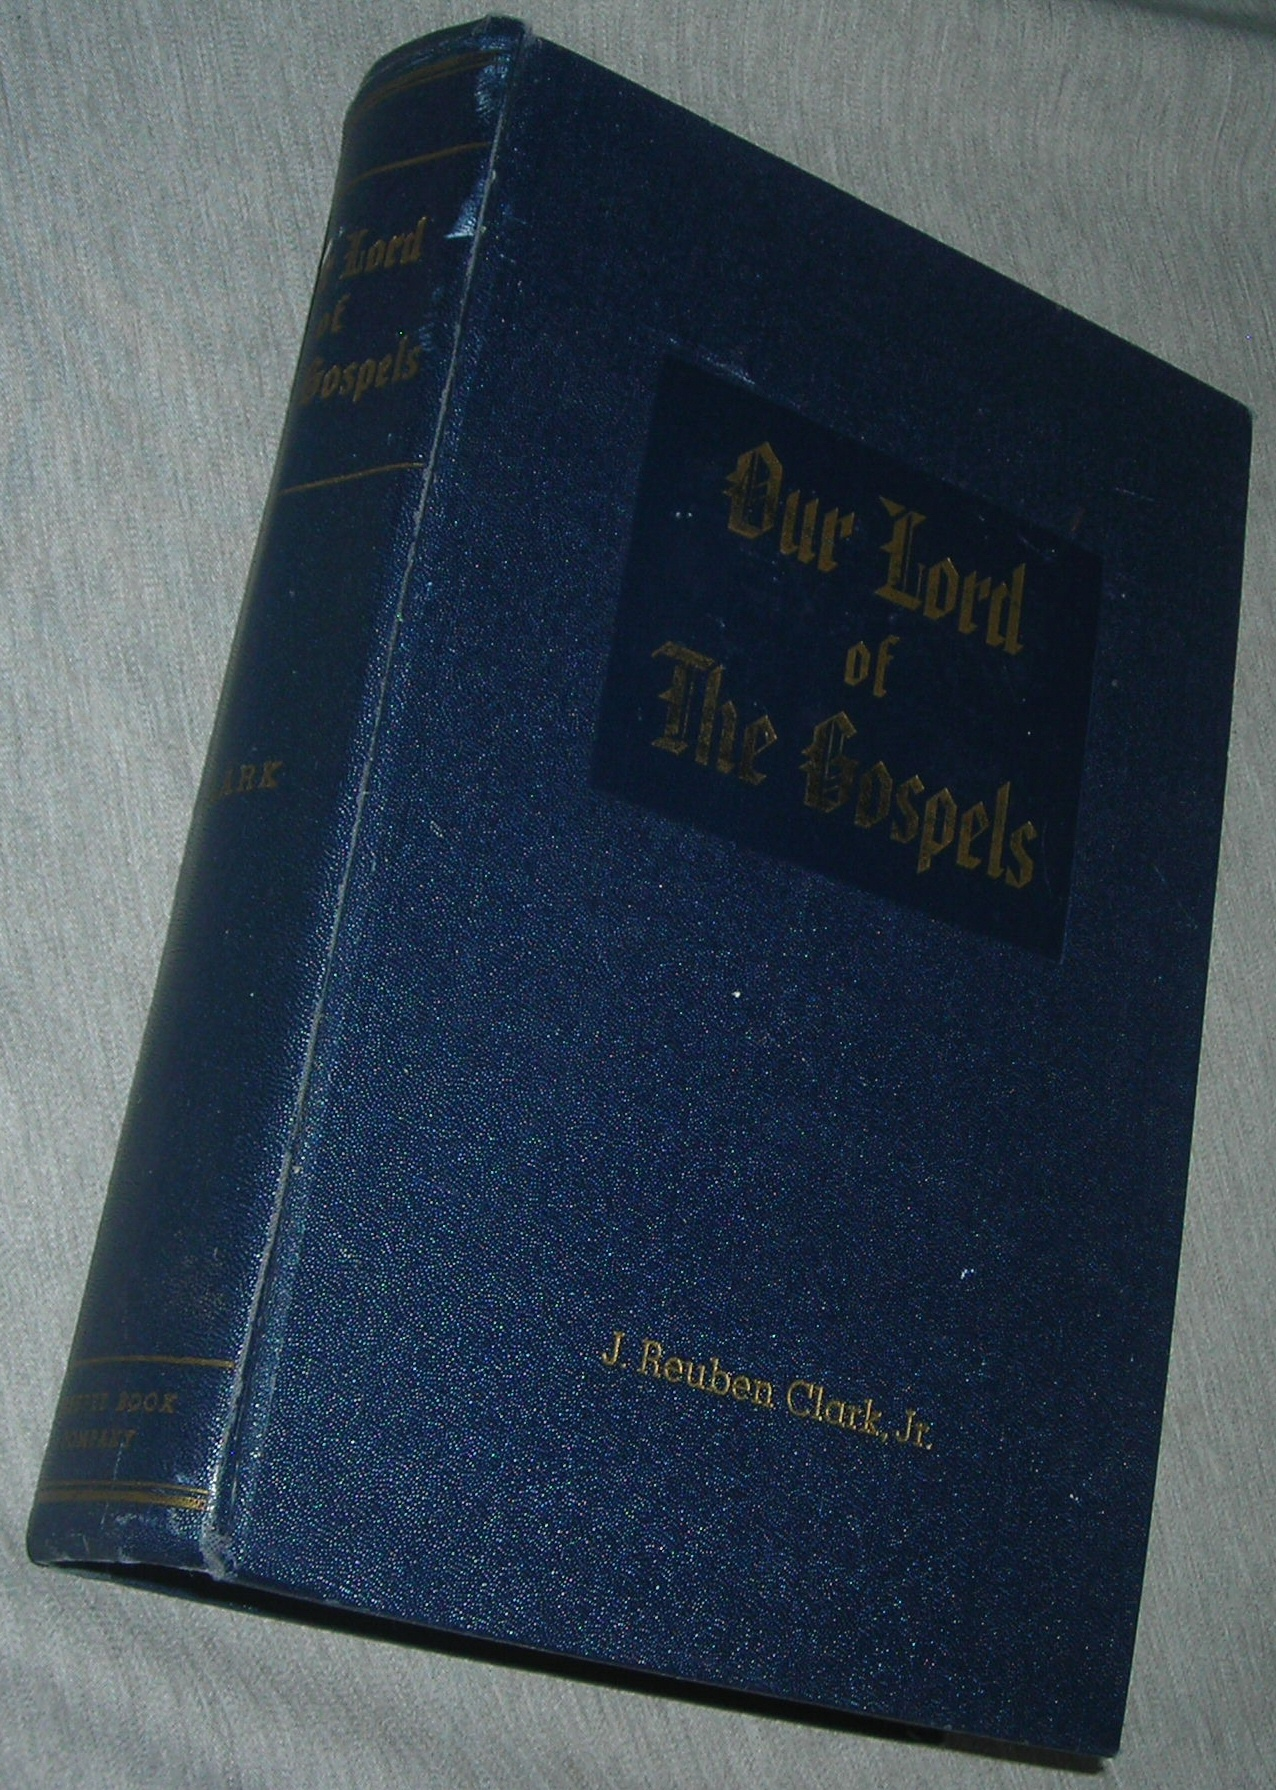 OUR LORD OF THE GOSPELS -  A Harmony of the Gospels, Clark, J. Reuben, Jr.